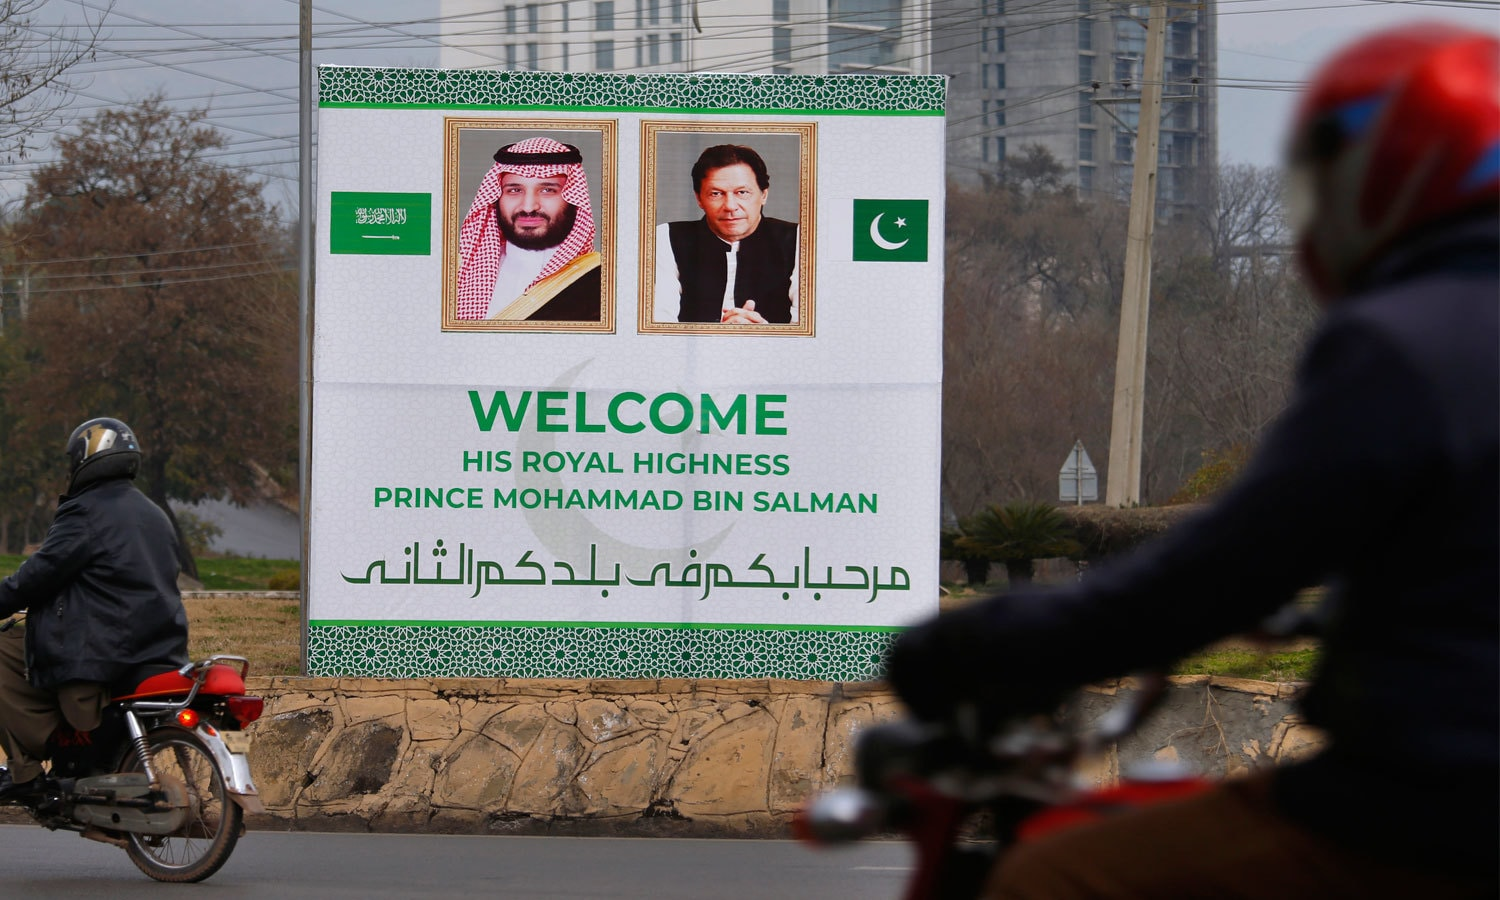 A welcoming banner featuring the portrait of the crown prince and Senate Chairman Sadiq Sanjrani is displayed on the building of the Parliament House in Islamabad. — AFP